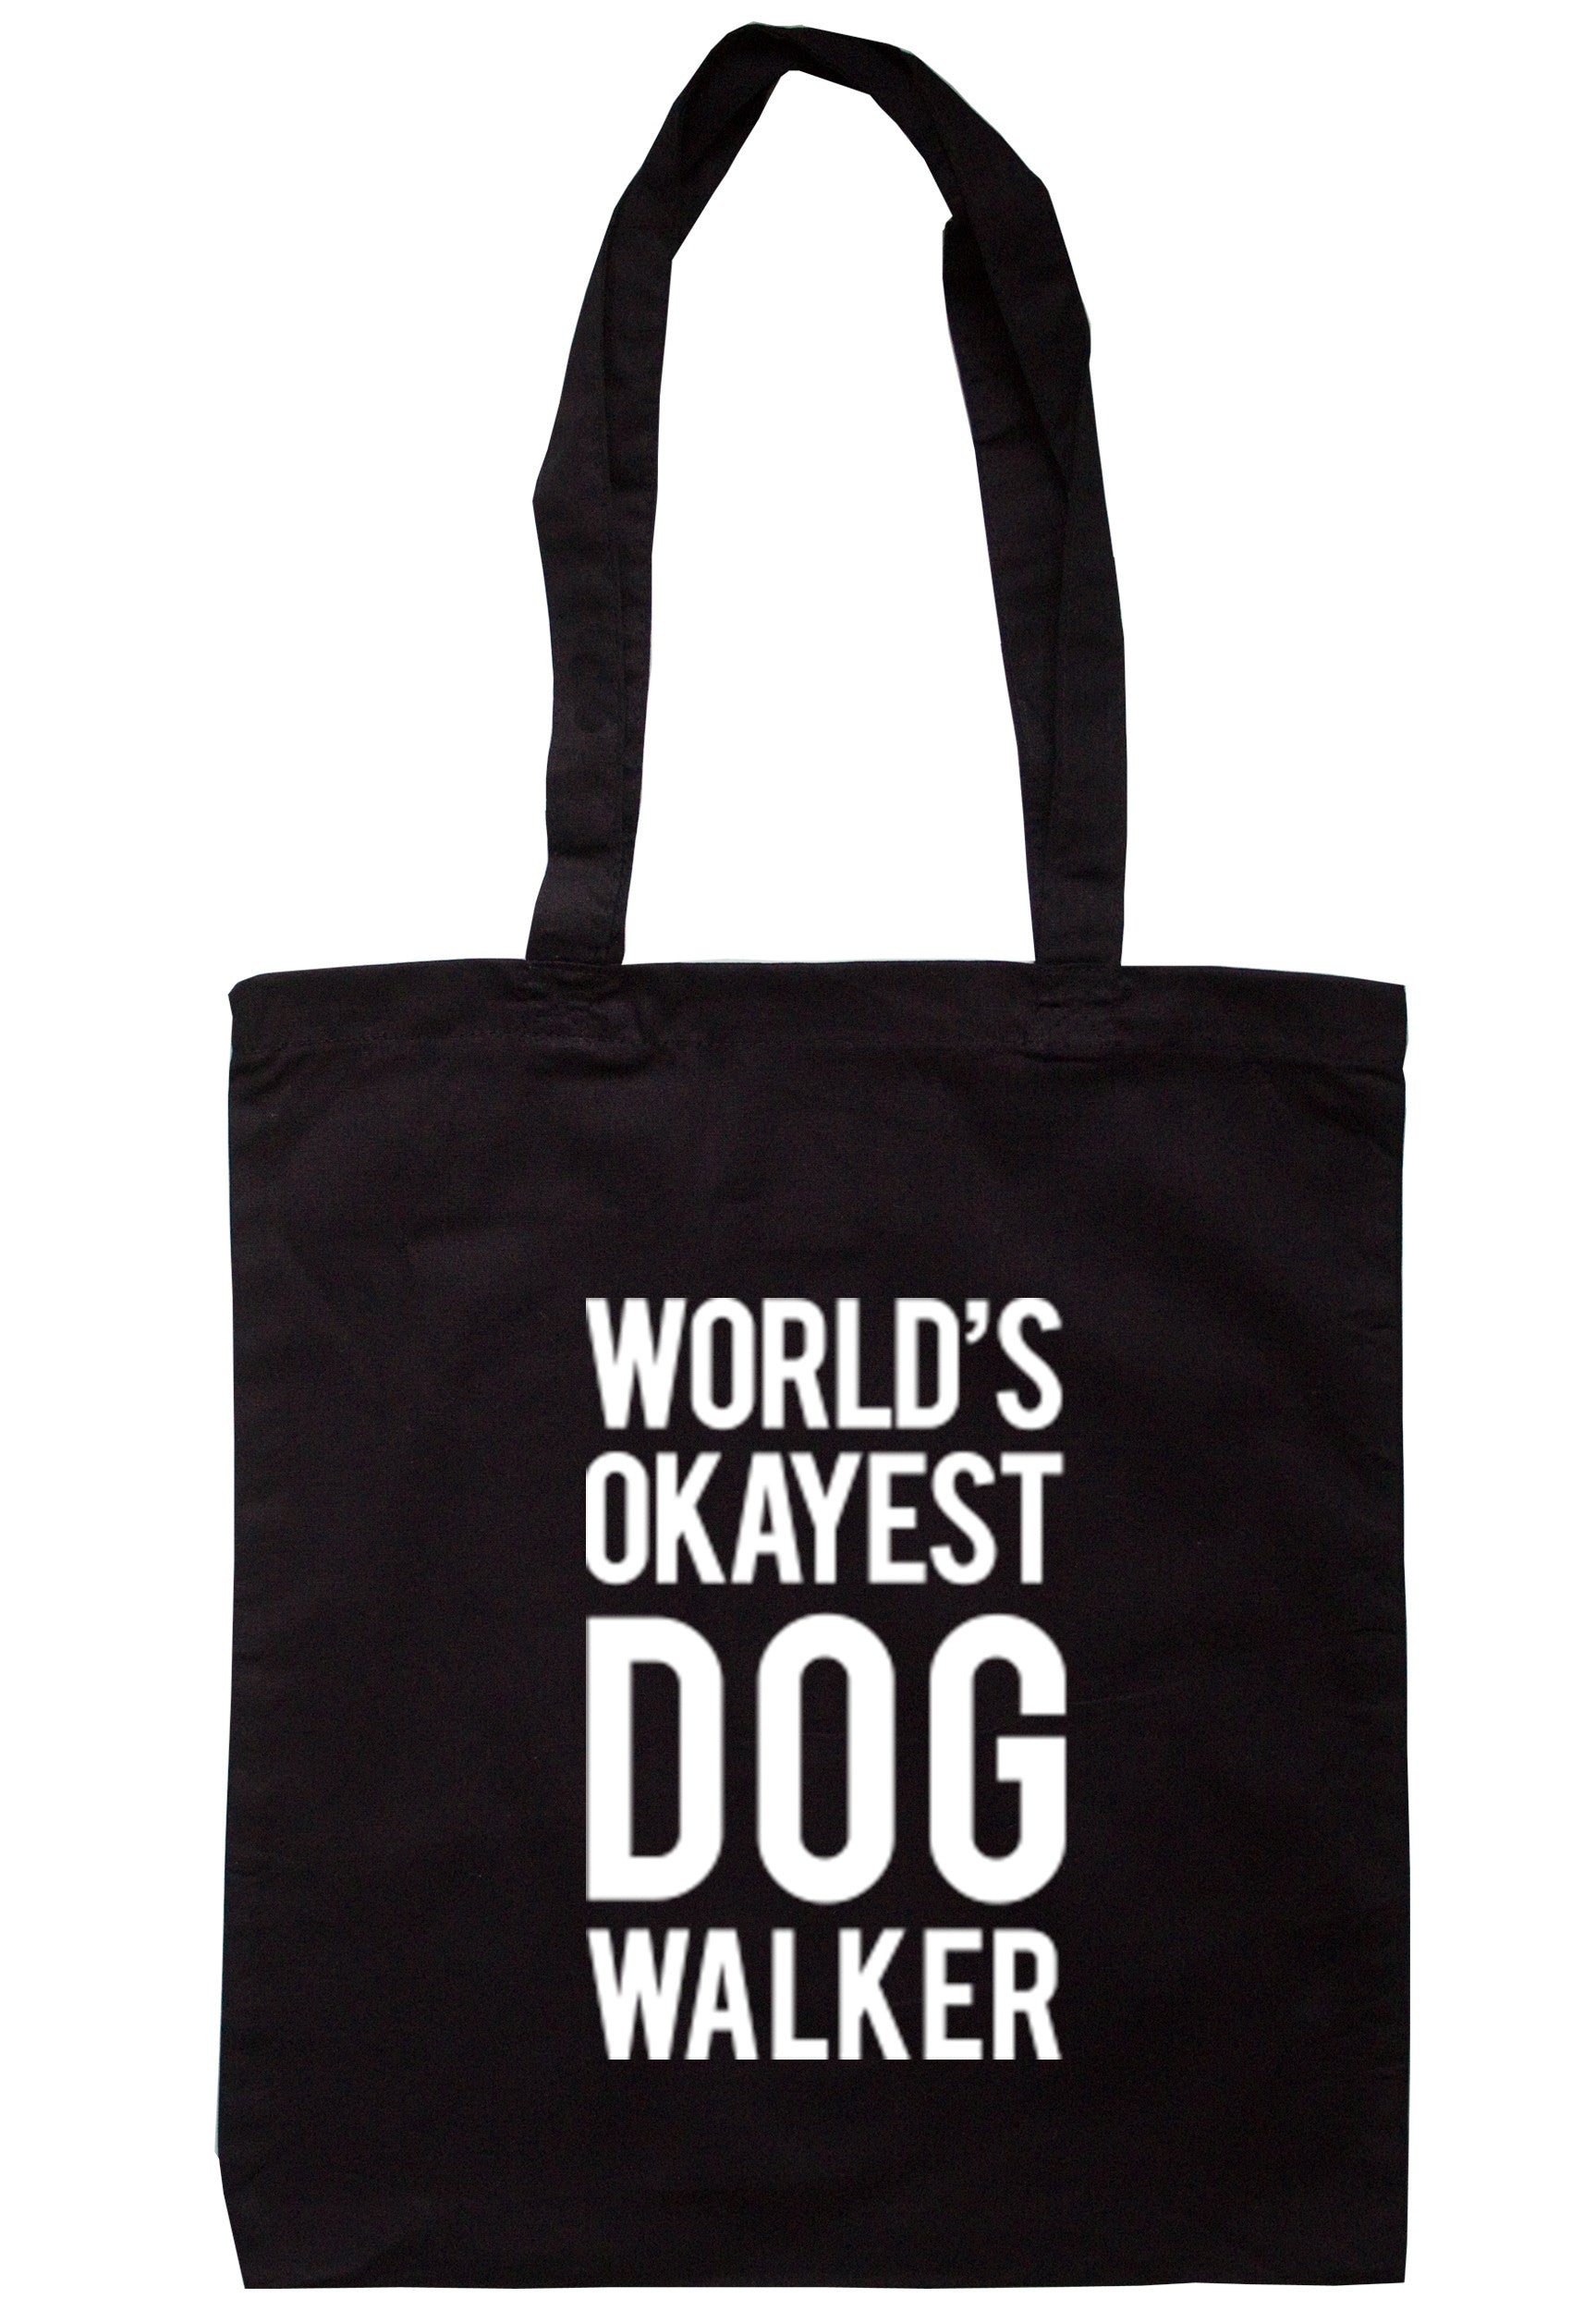 Worlds Okayest Dog Walker Tote Bag TB0297 - Illustrated Identity Ltd.